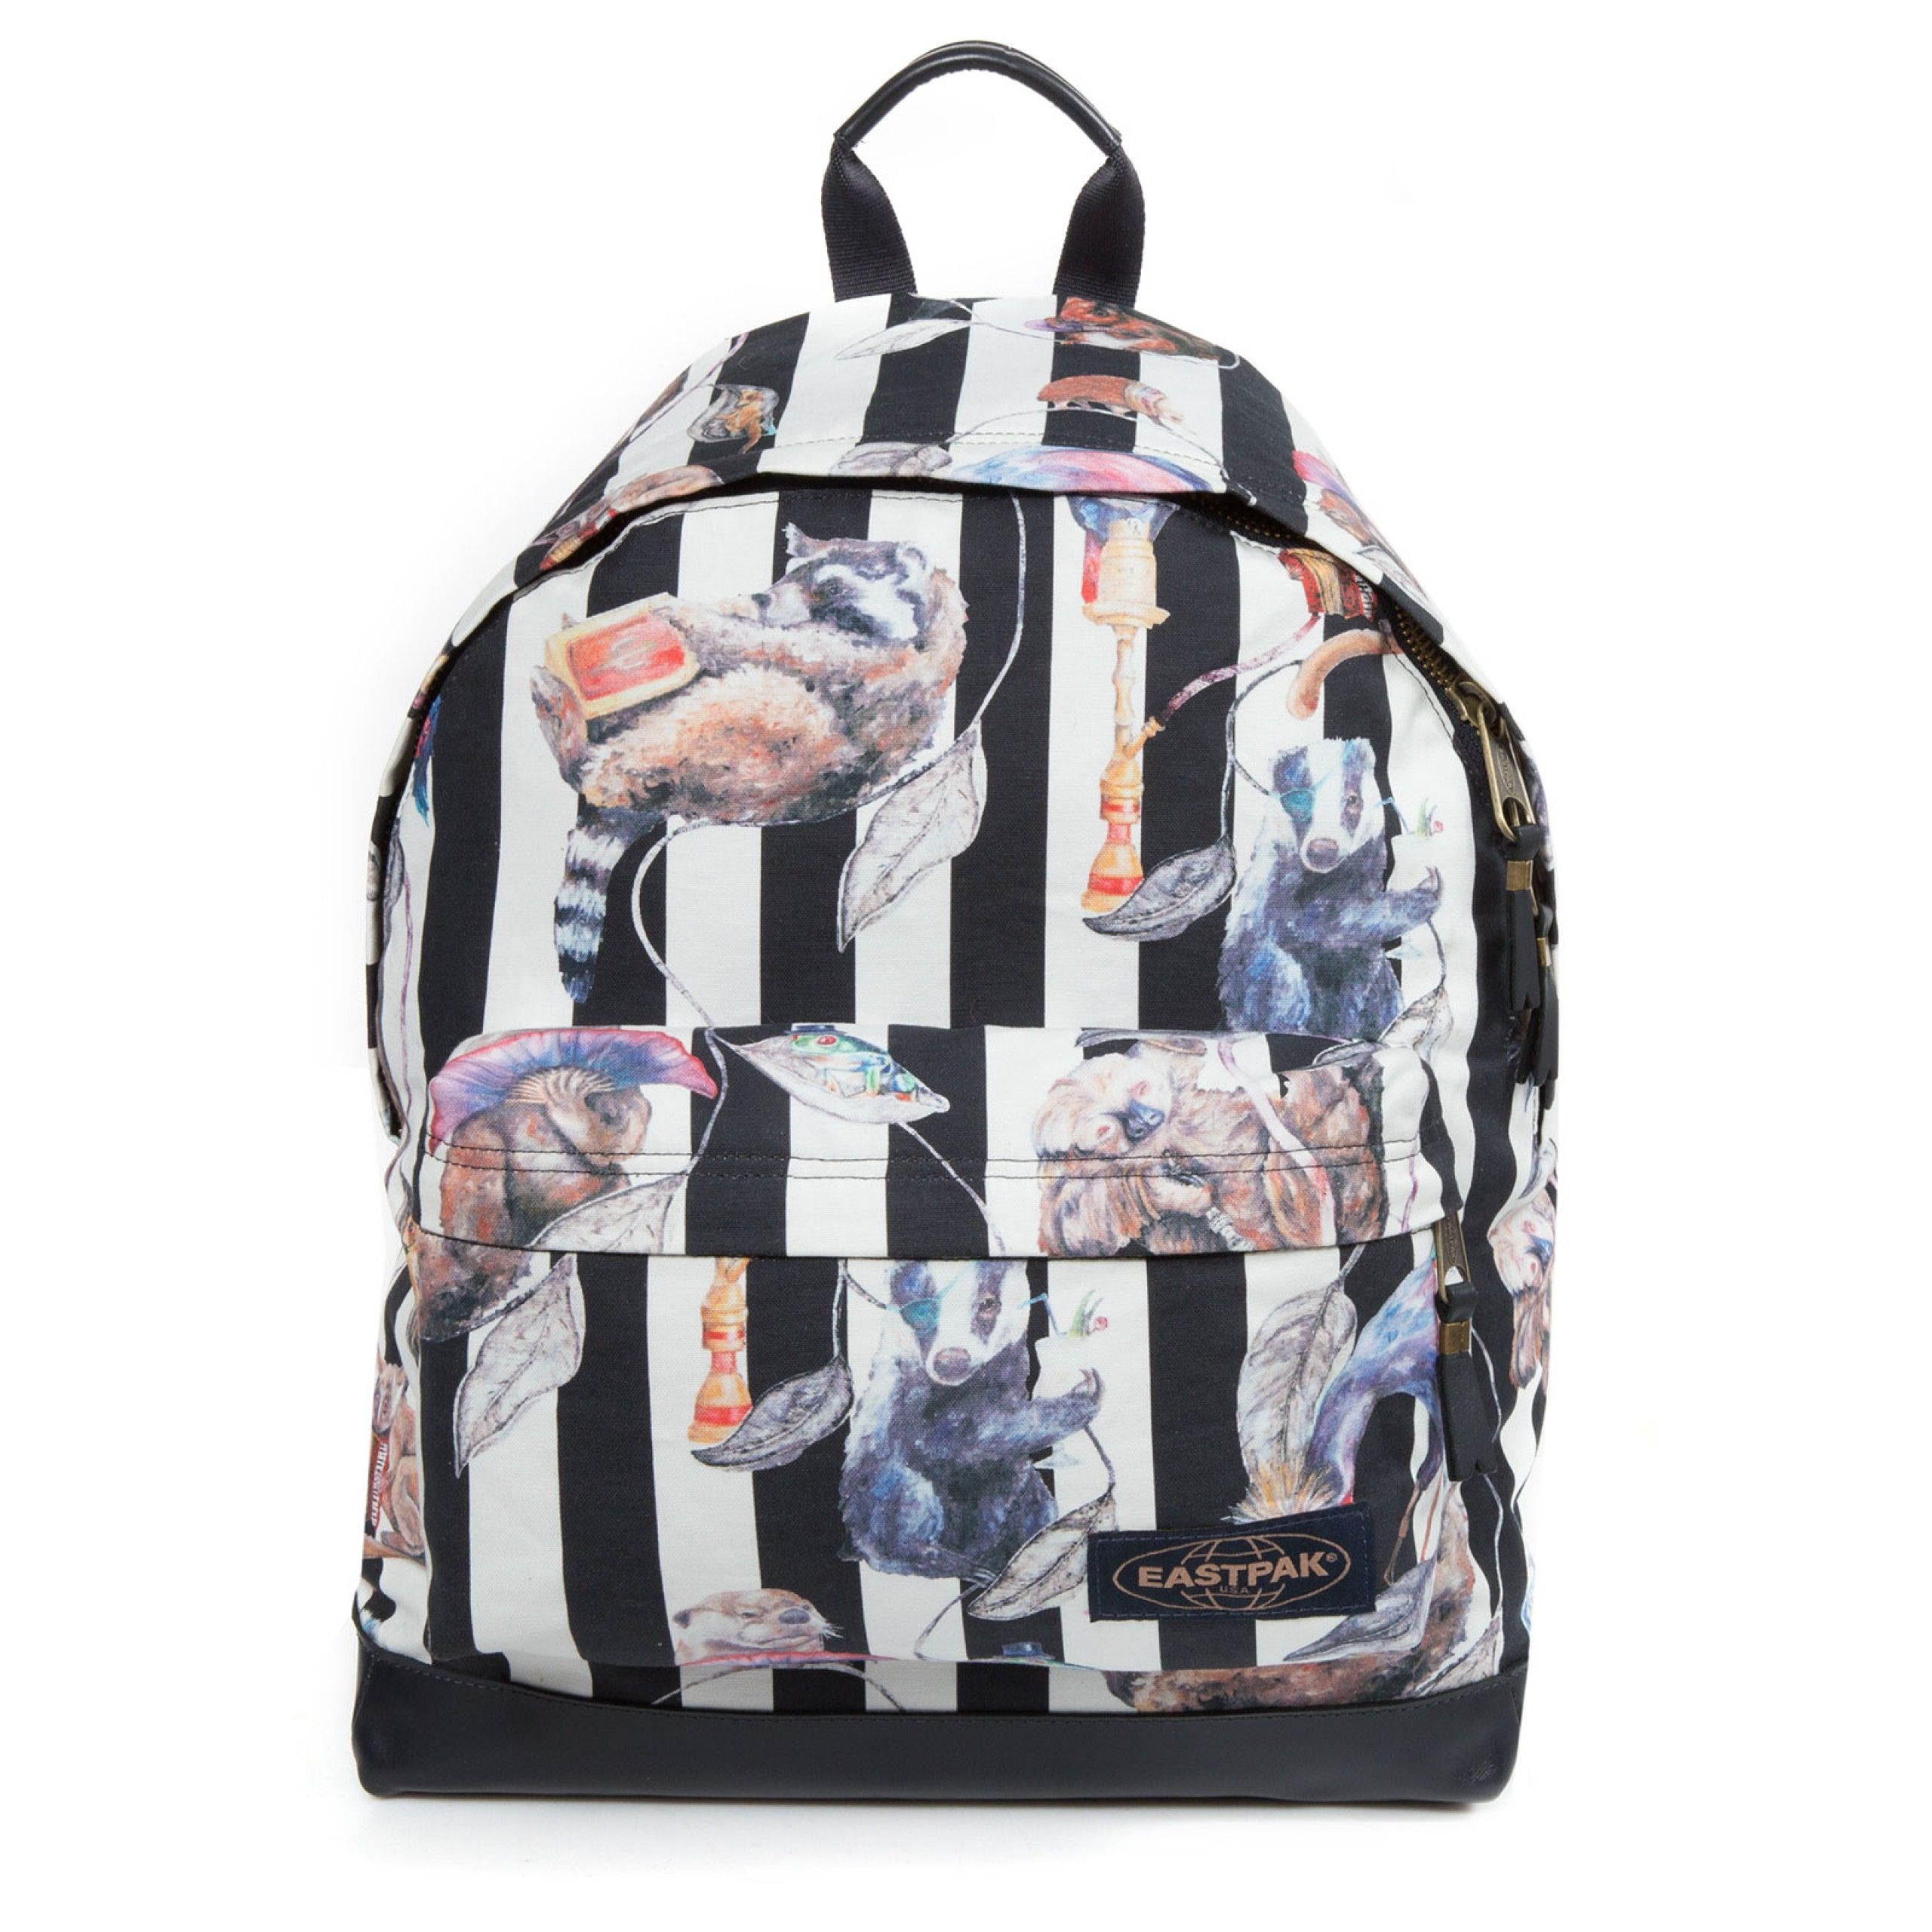 Hoh X Eastpak Backpack Hackney Empire Eastpak Backpack